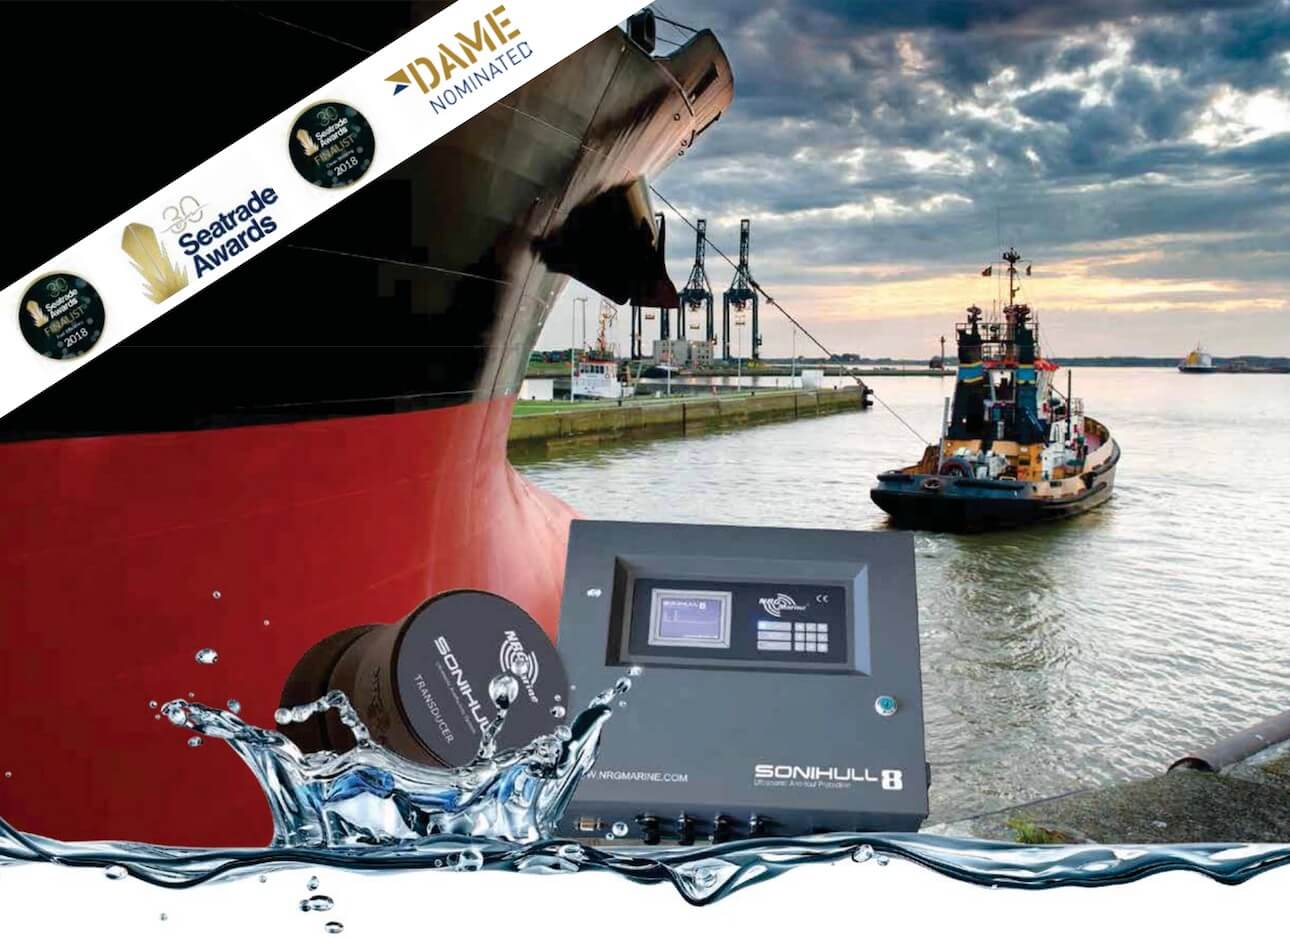 Leask Marine are now an approved dealer for Sonihull products